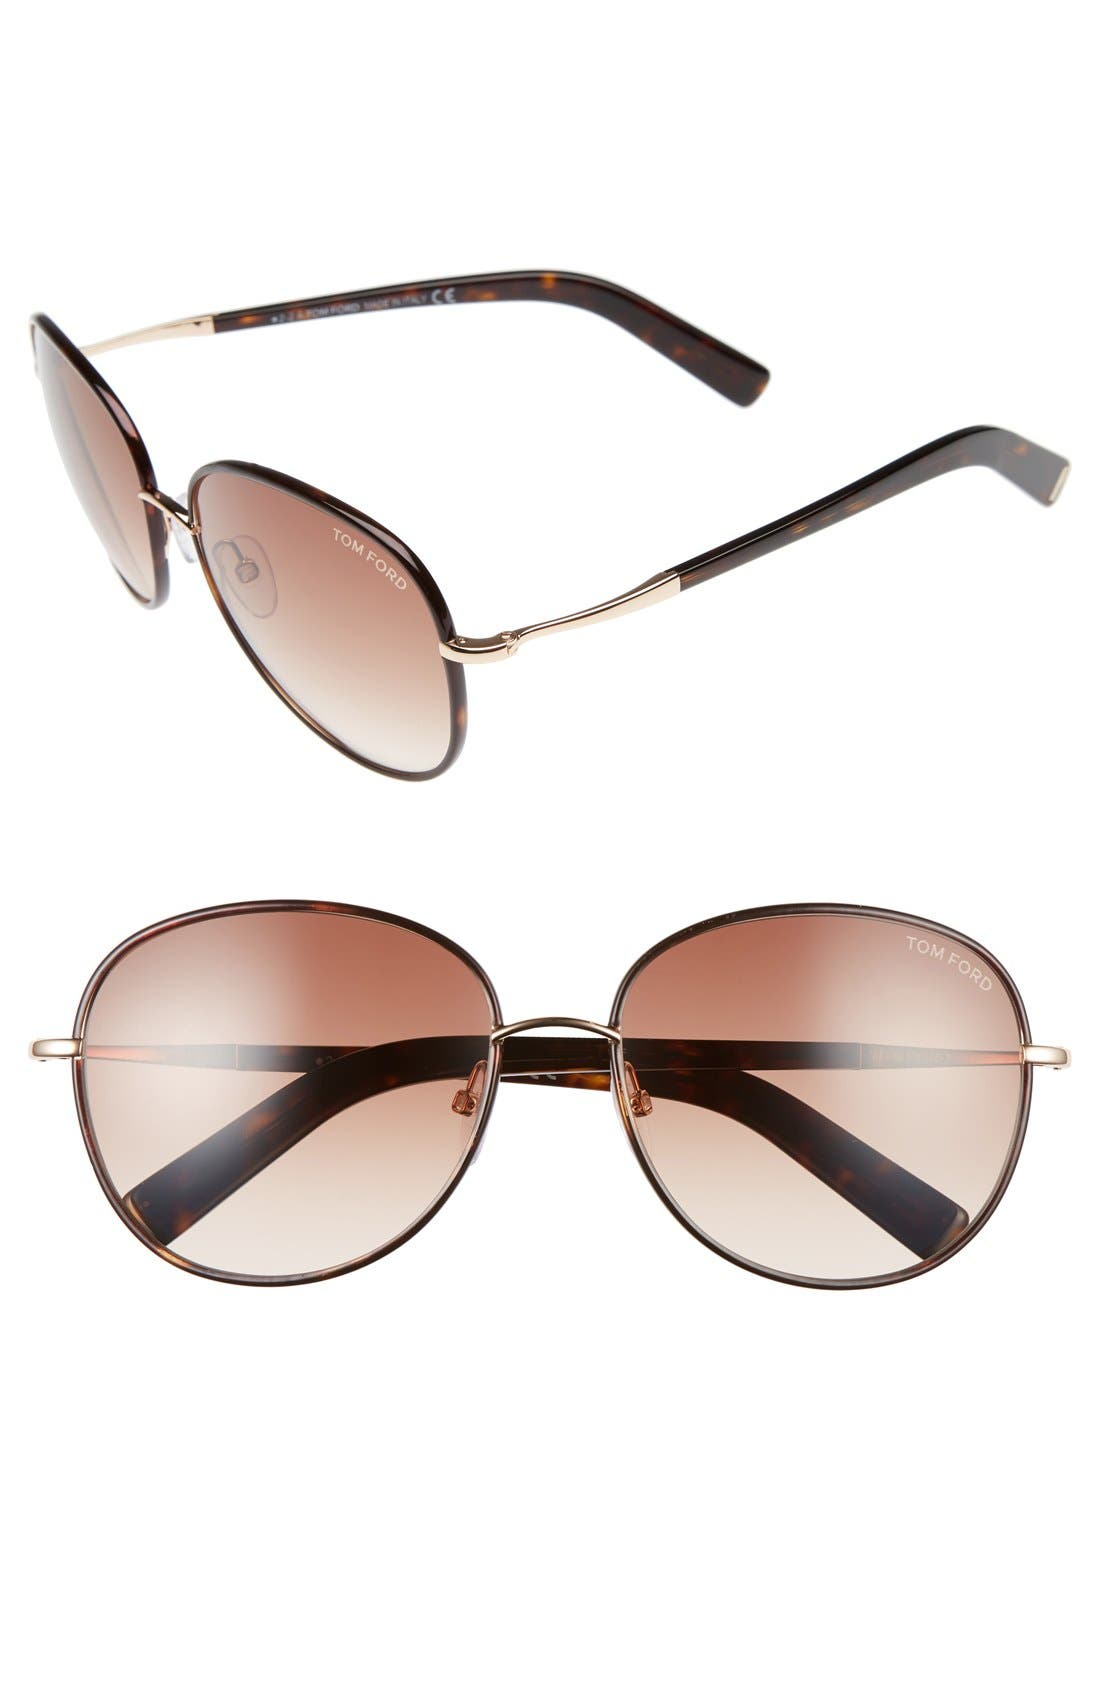 Tom Ford Georgia 59mm Sunglasses